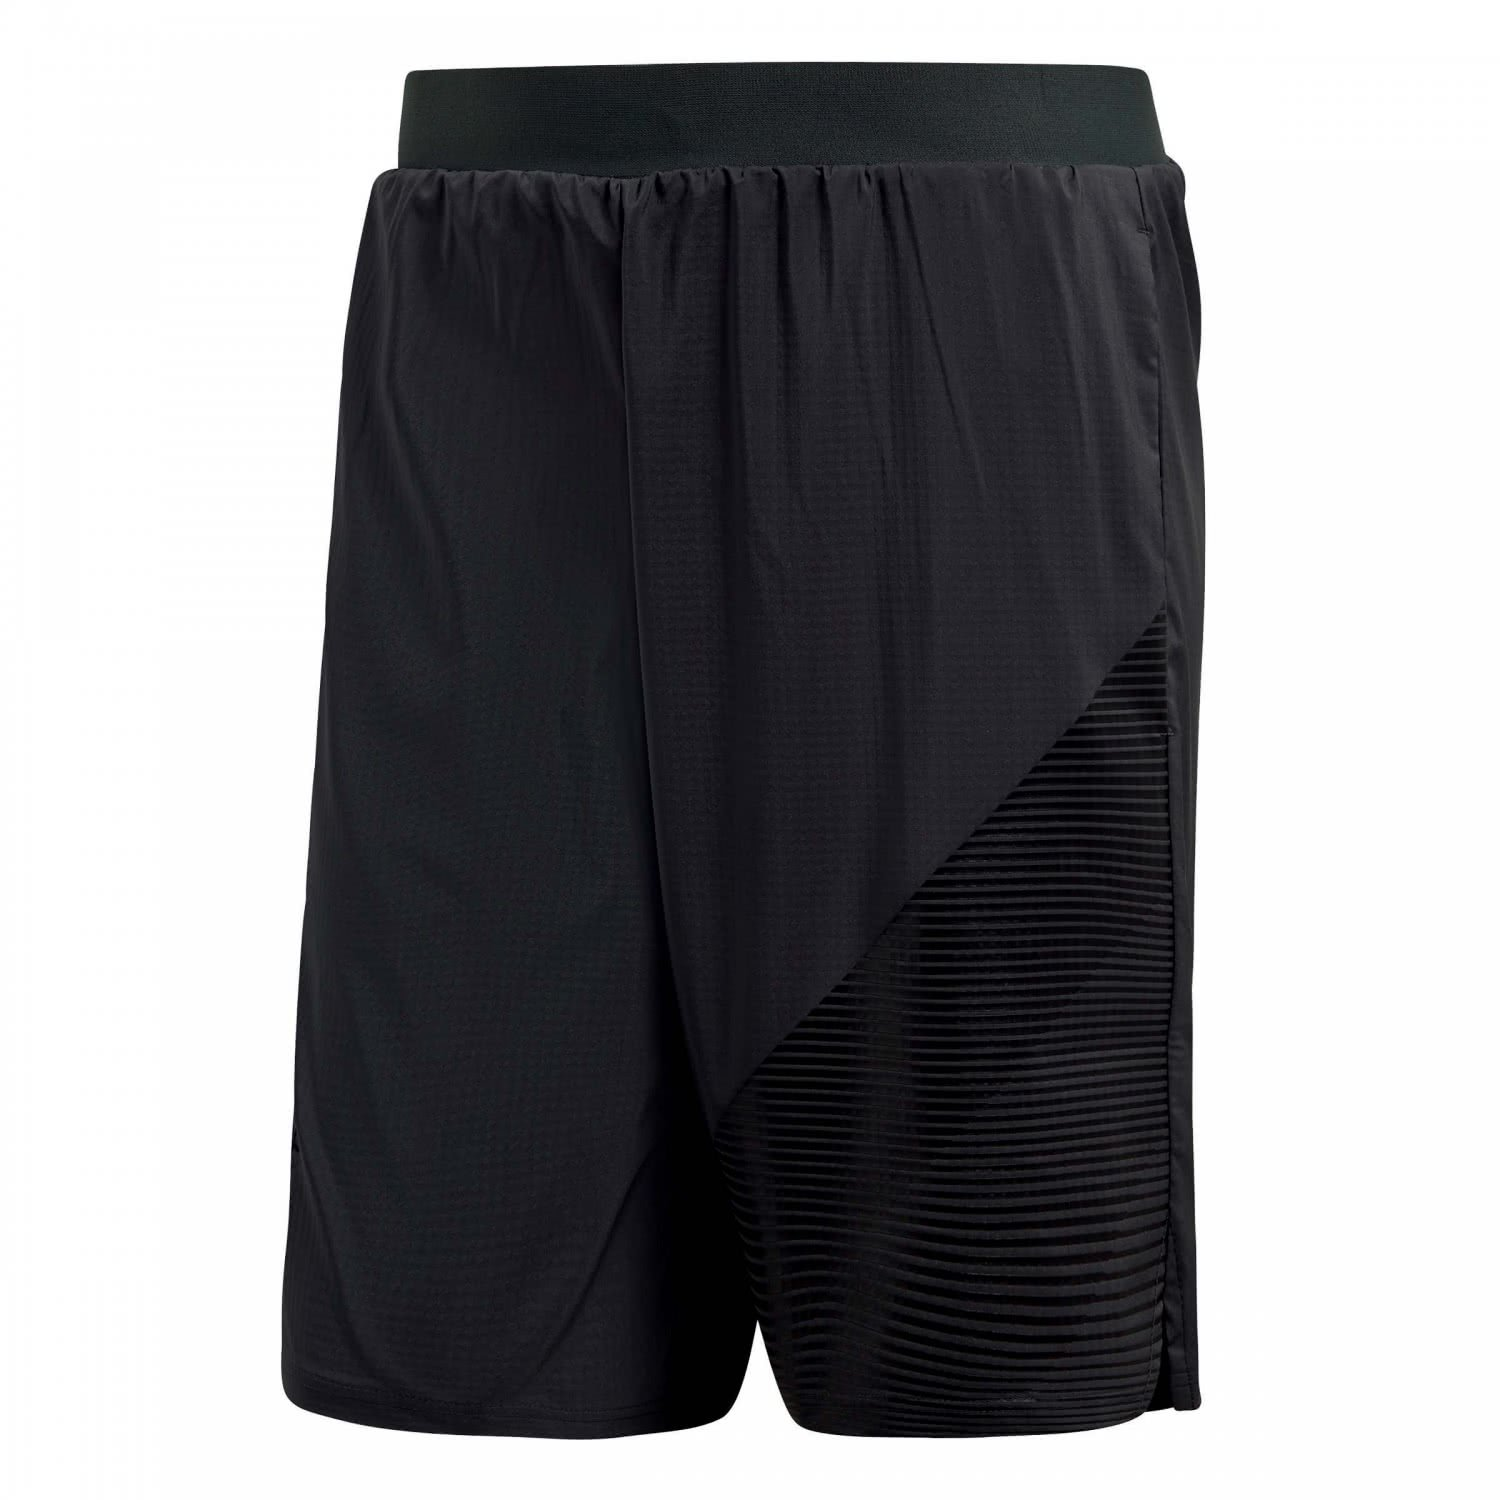 Adidas Herren DFB Seasonal Specials Woven Shorts